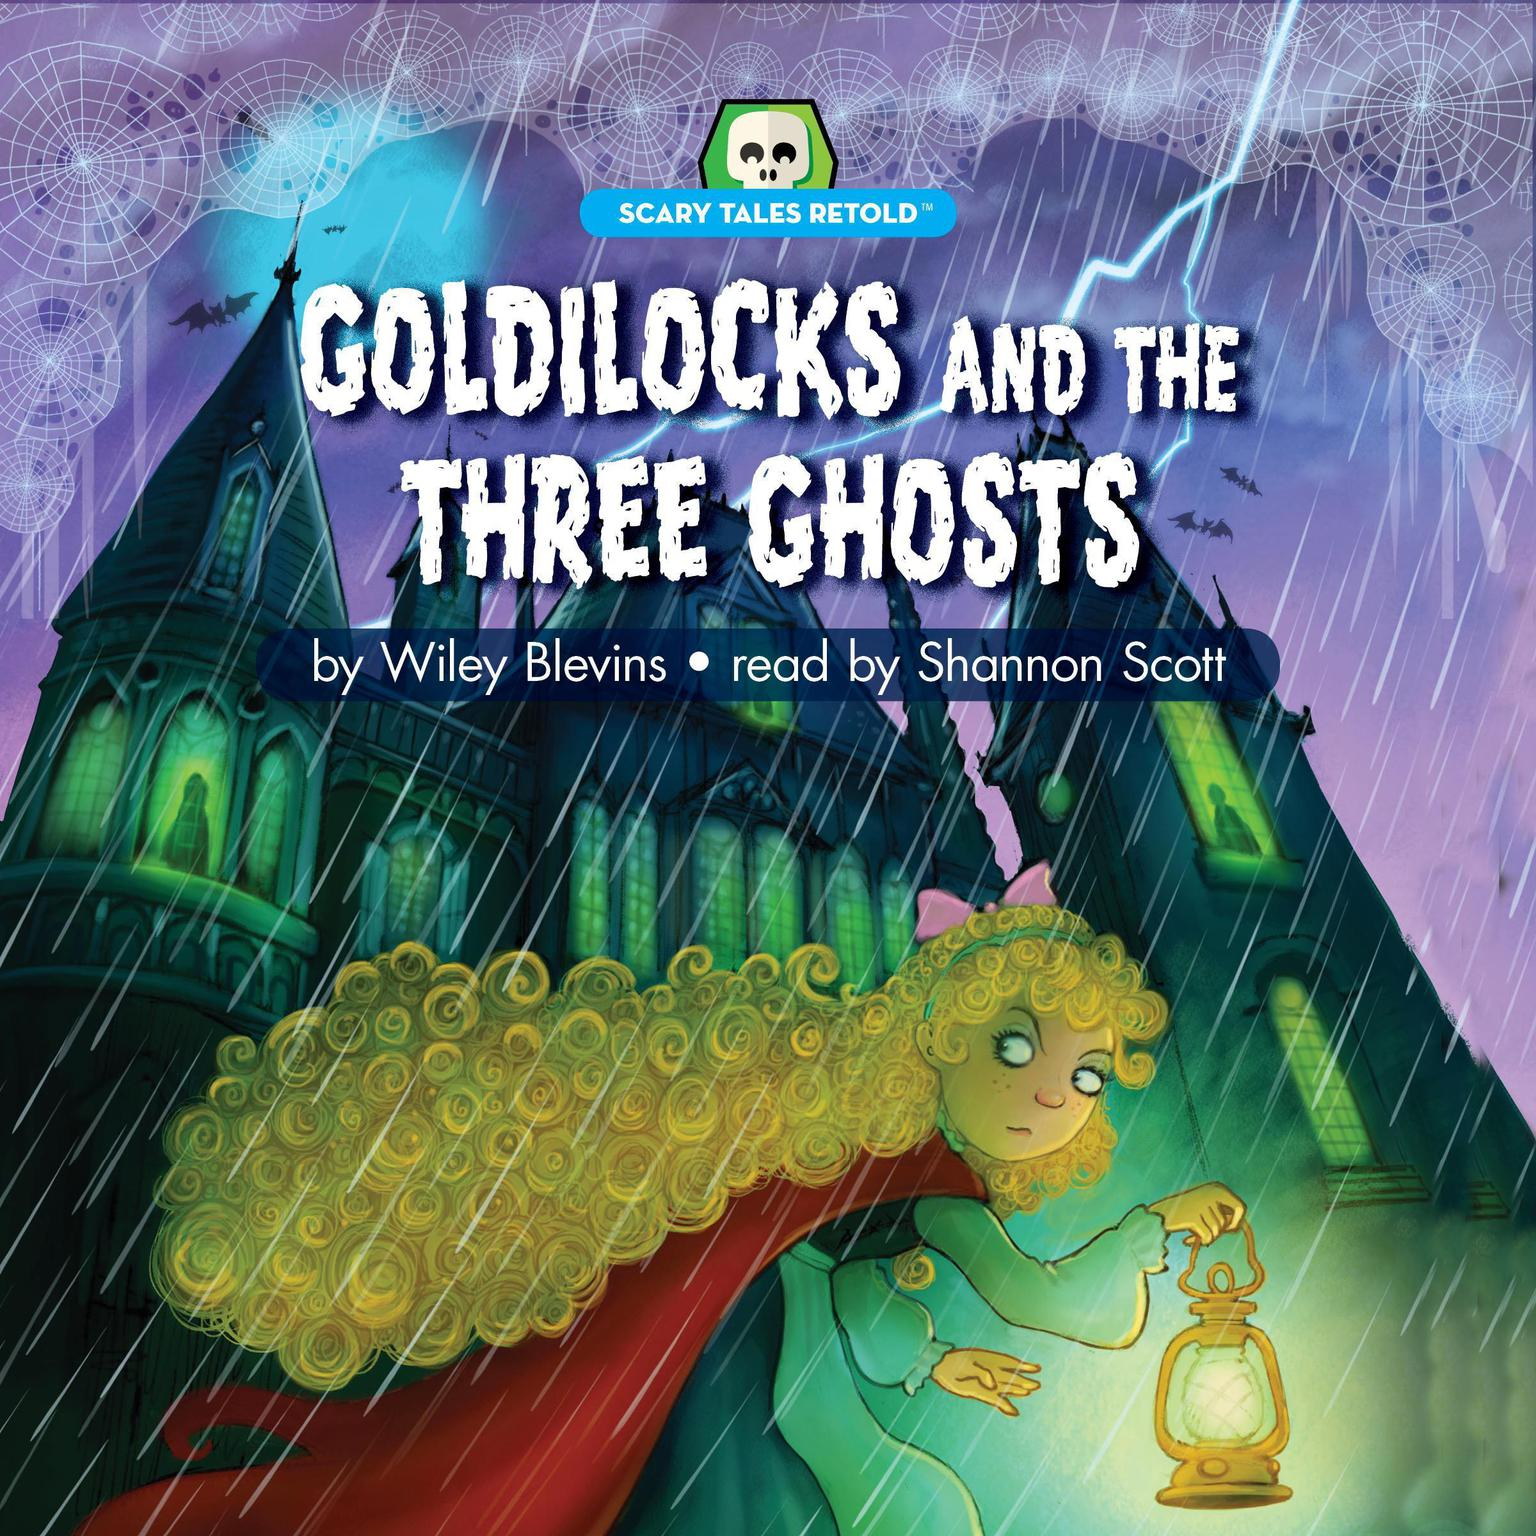 Goldilocks and the Three Ghosts: Scary Tales Retold Audiobook, by Wiley Blevins